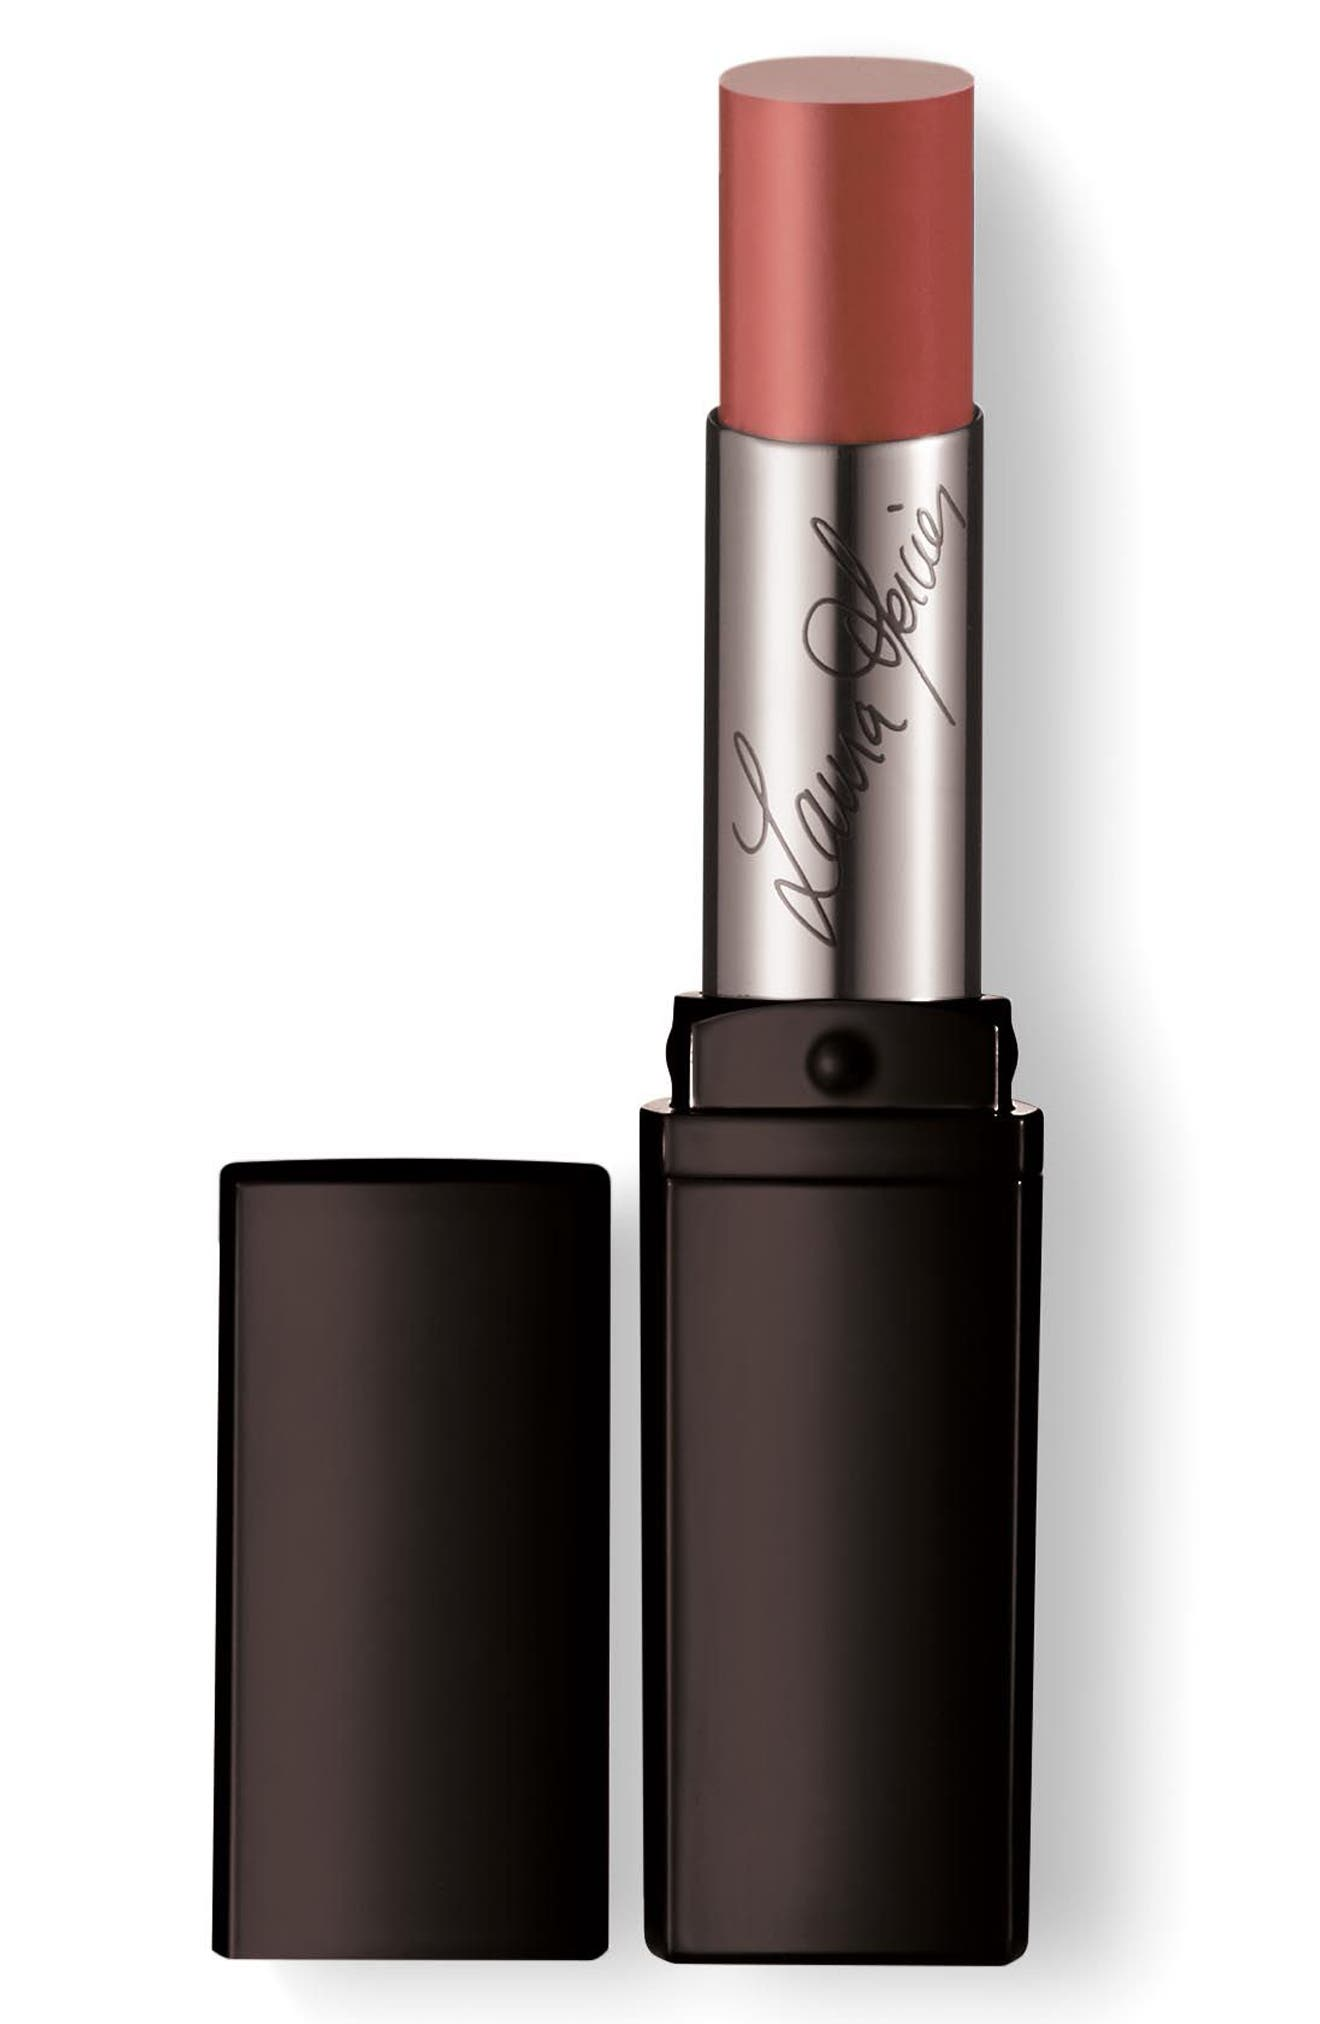 Laura Mercier 'Lip Parfait' Creamy Colour Balm